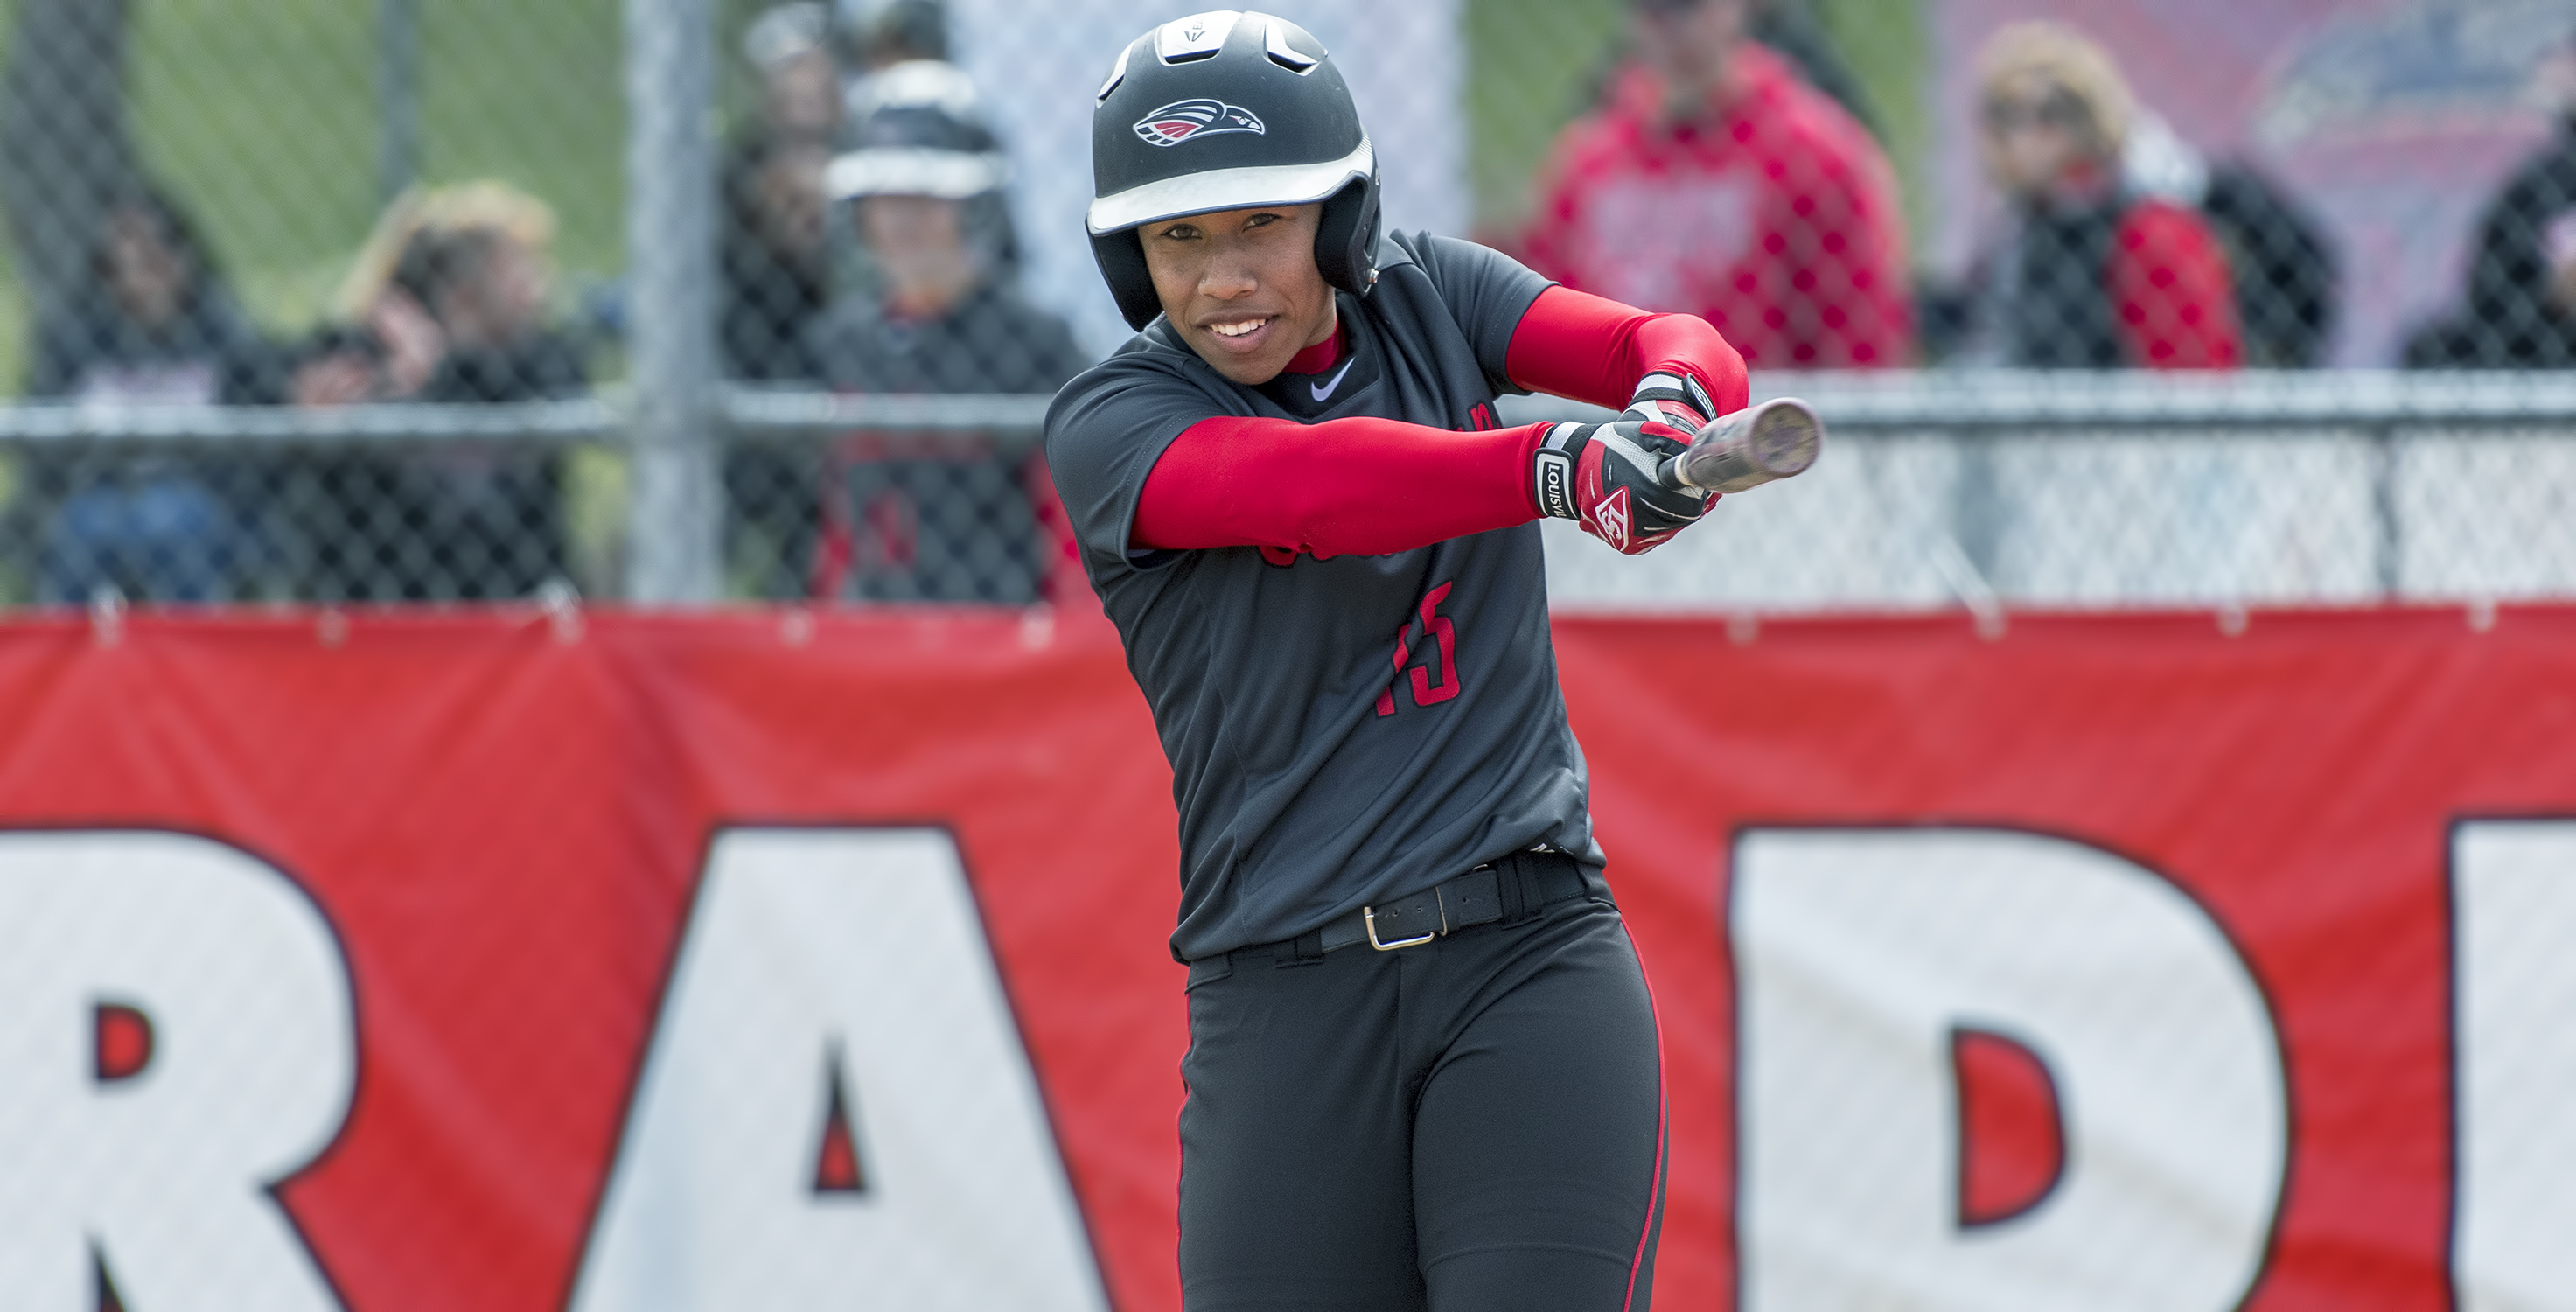 sou softball kayleen smith